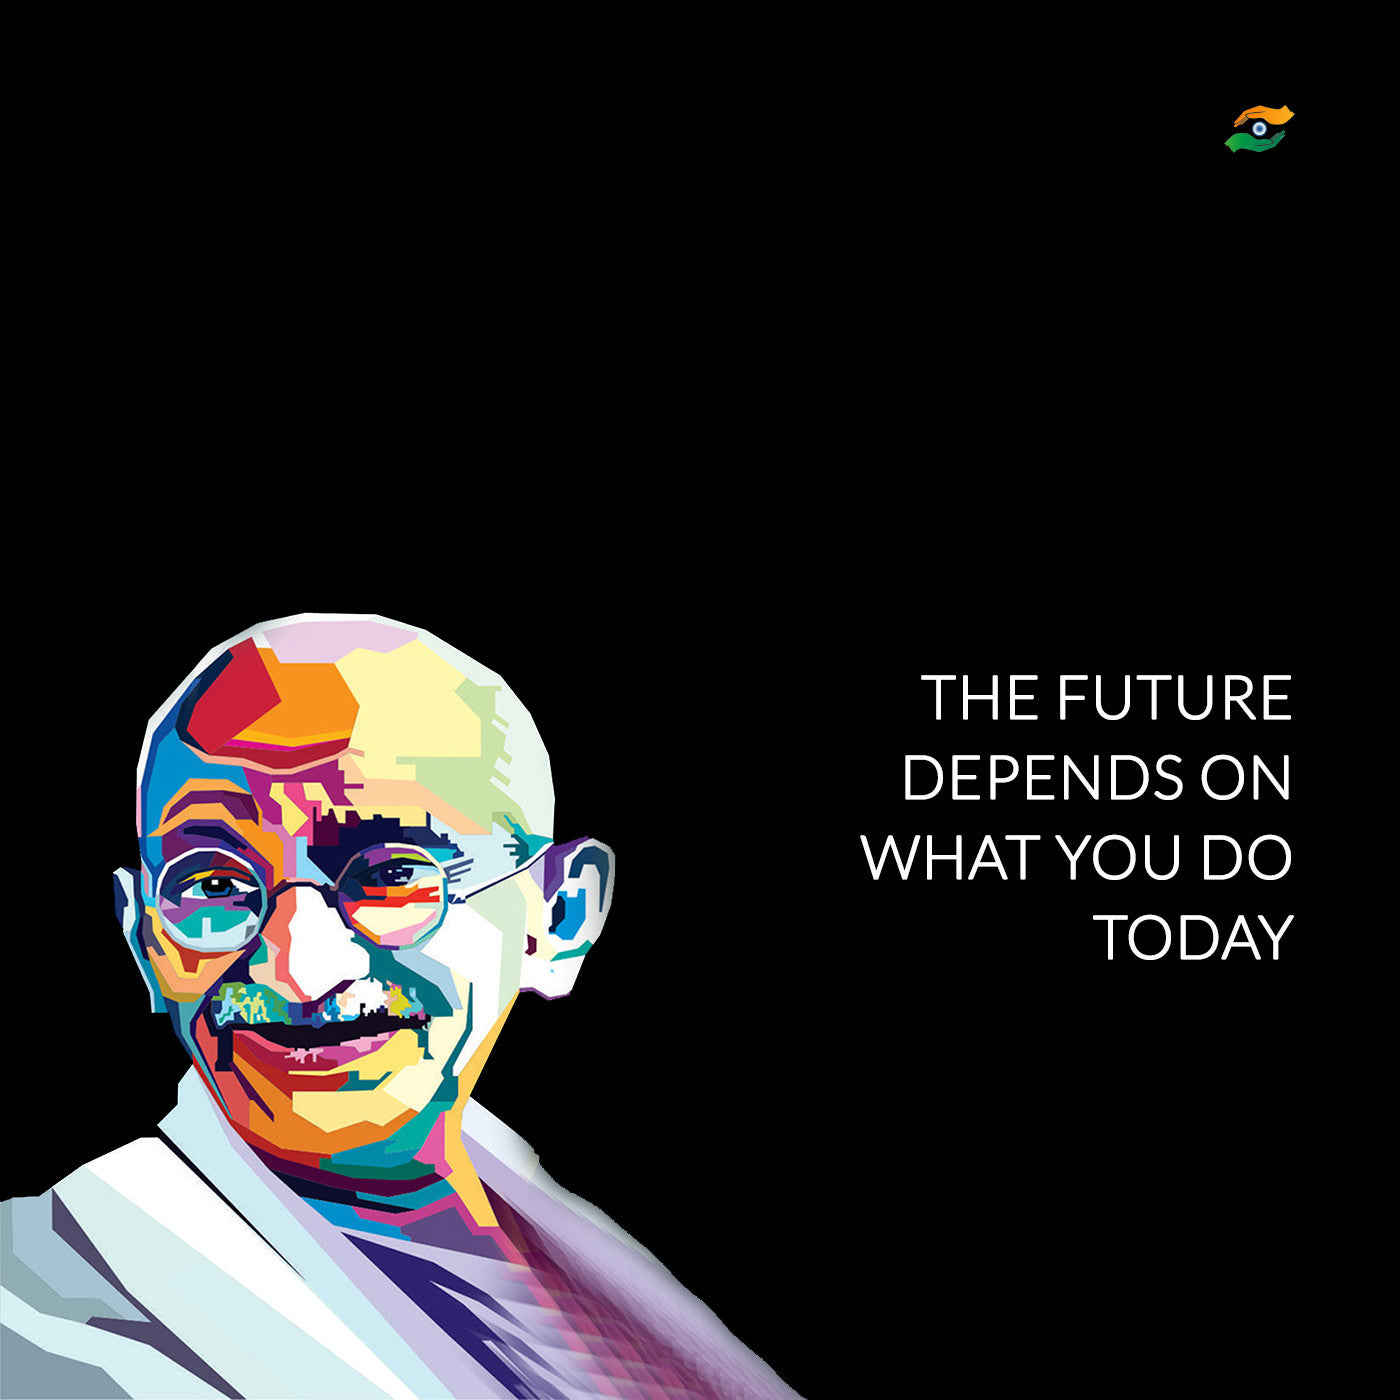 Inspirational Day Quotes: Set Of 3 Mahatma Gandhi Quotes In English With Black